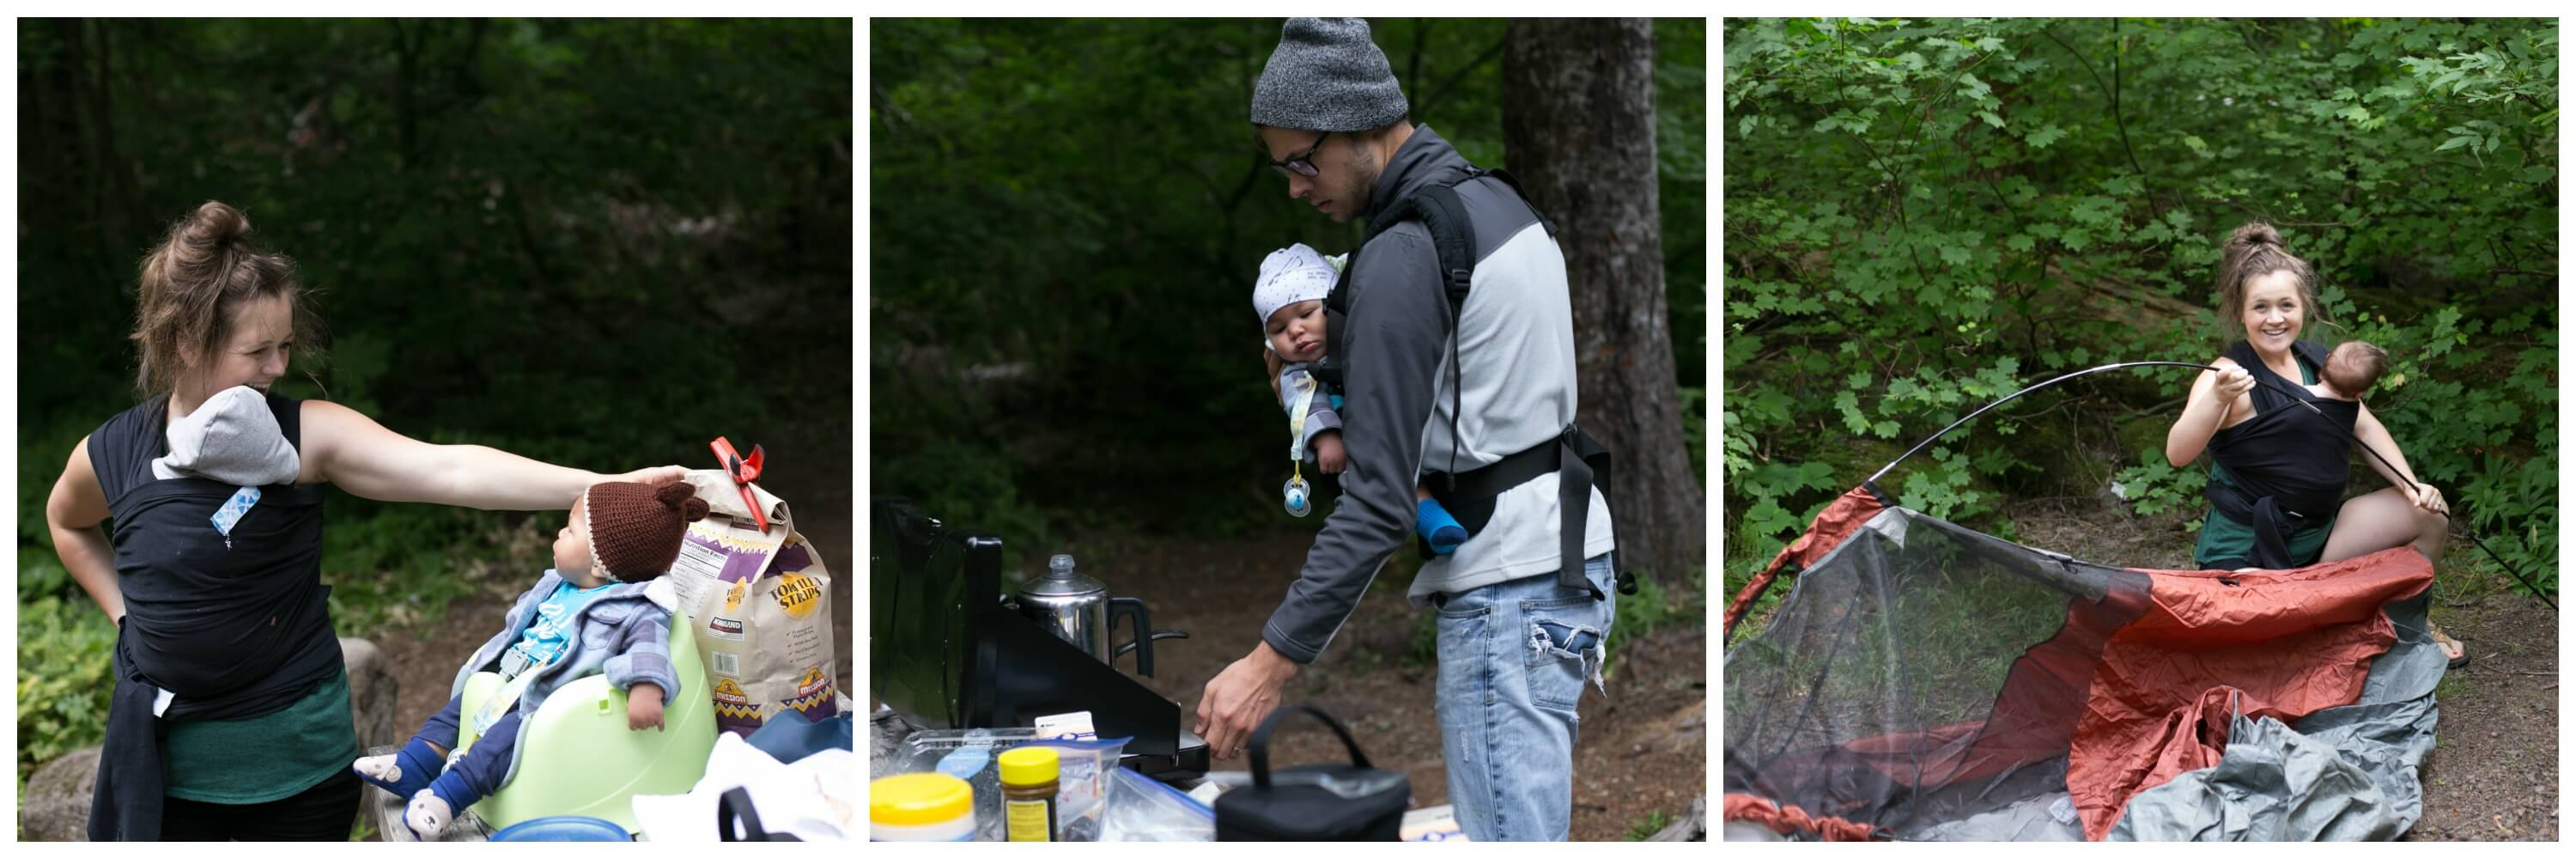 essentials for camping with a baby